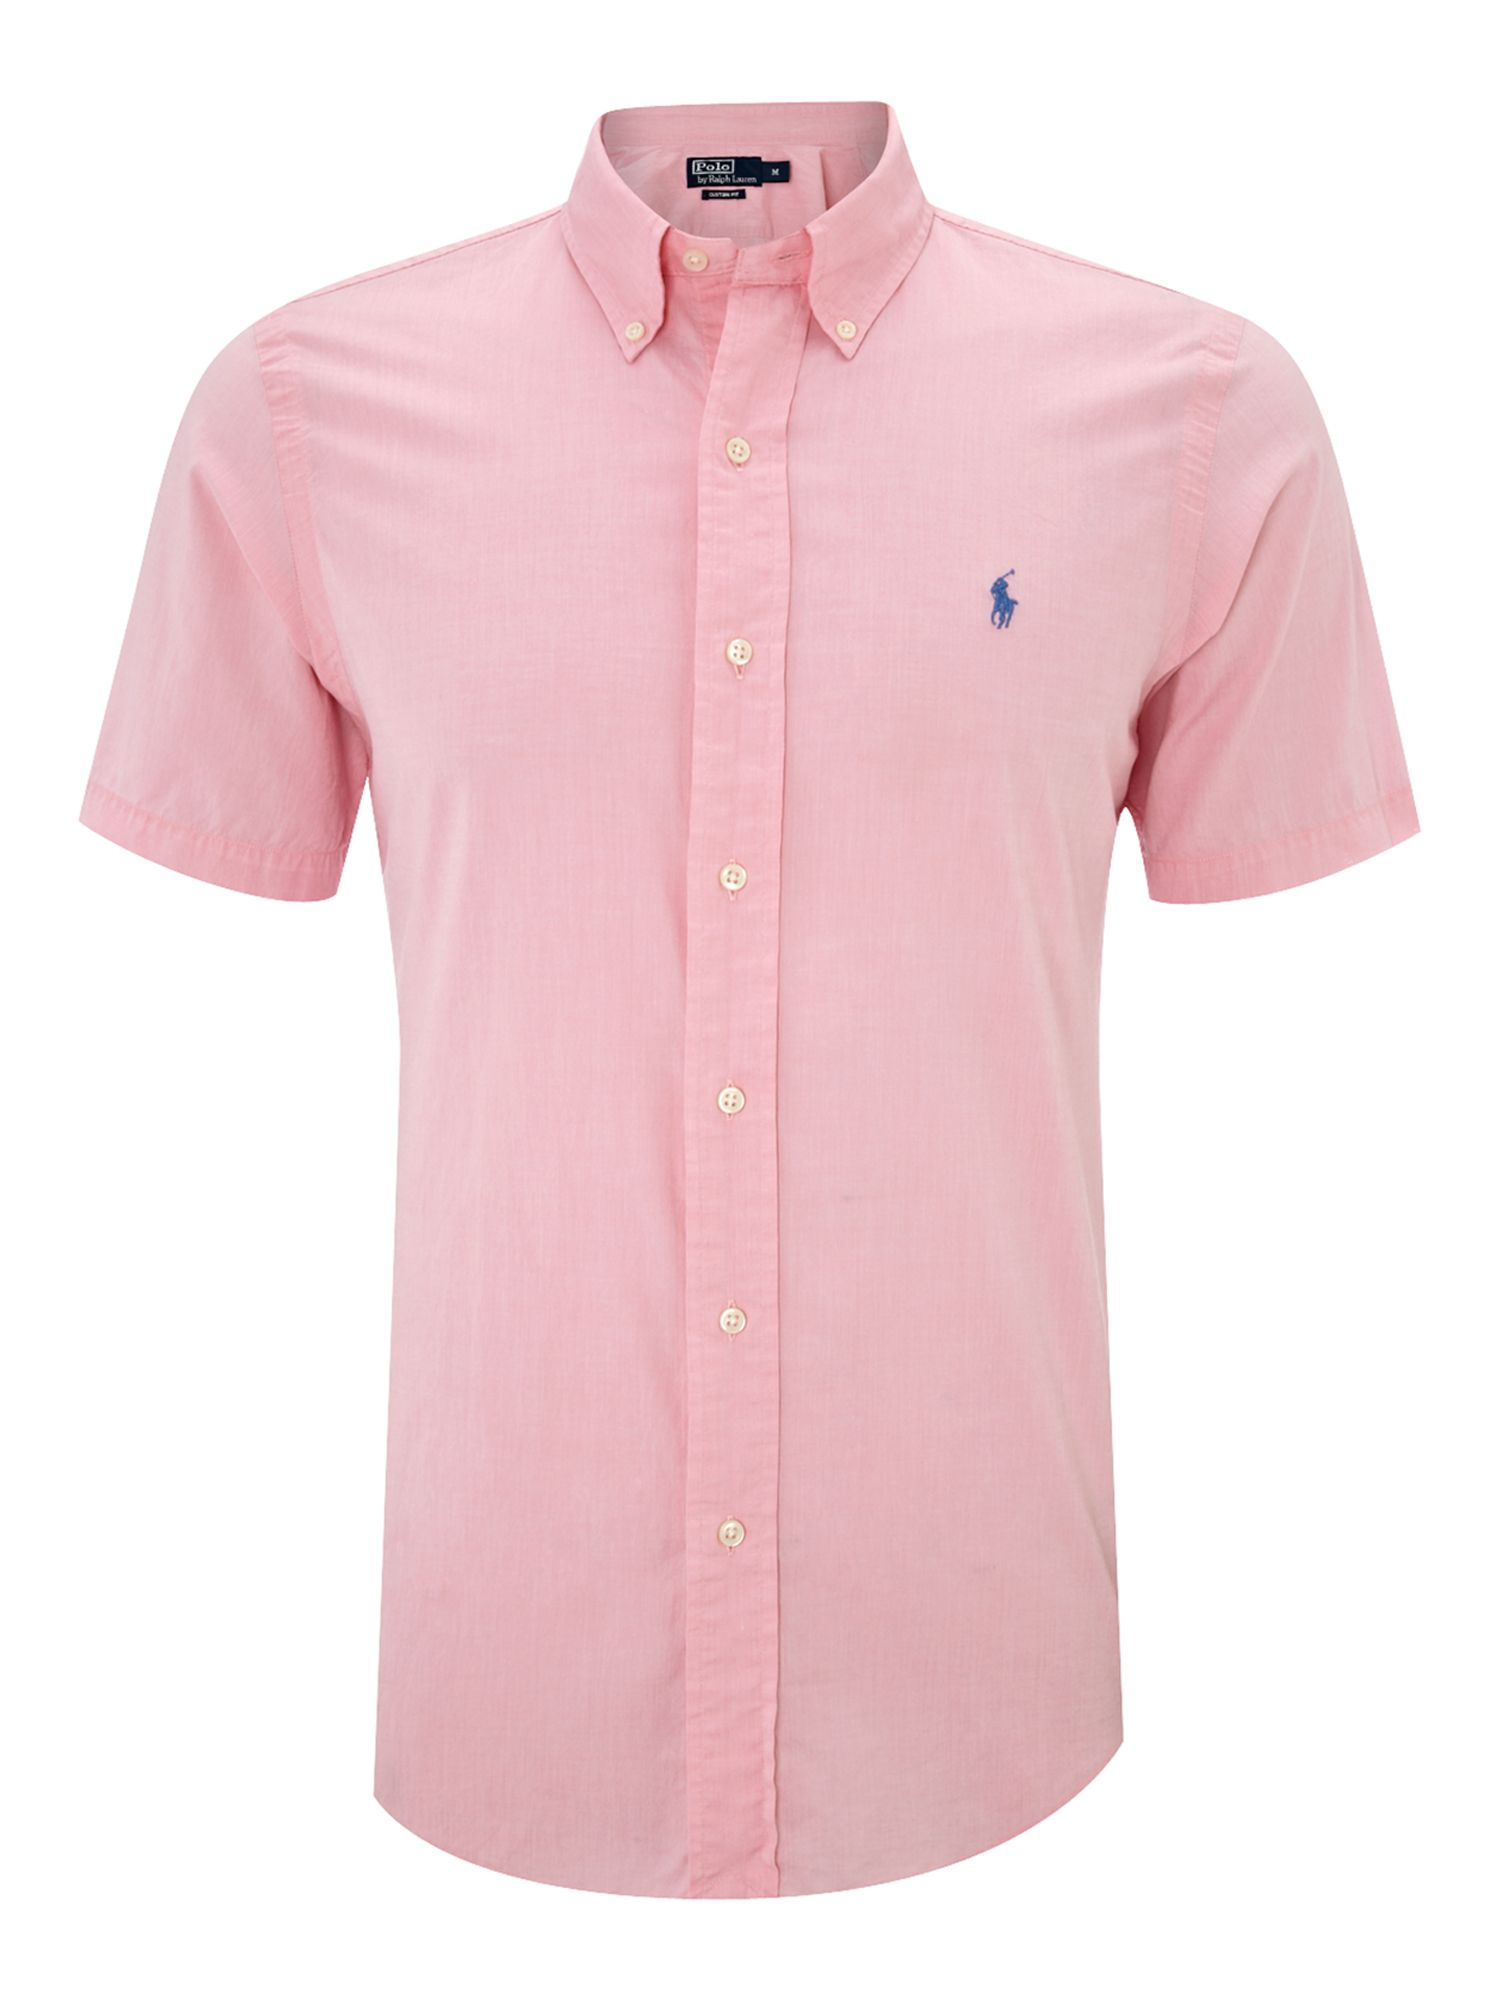 Polo Ralph Lauren Short Sleeved Custon Fitted Shirt In